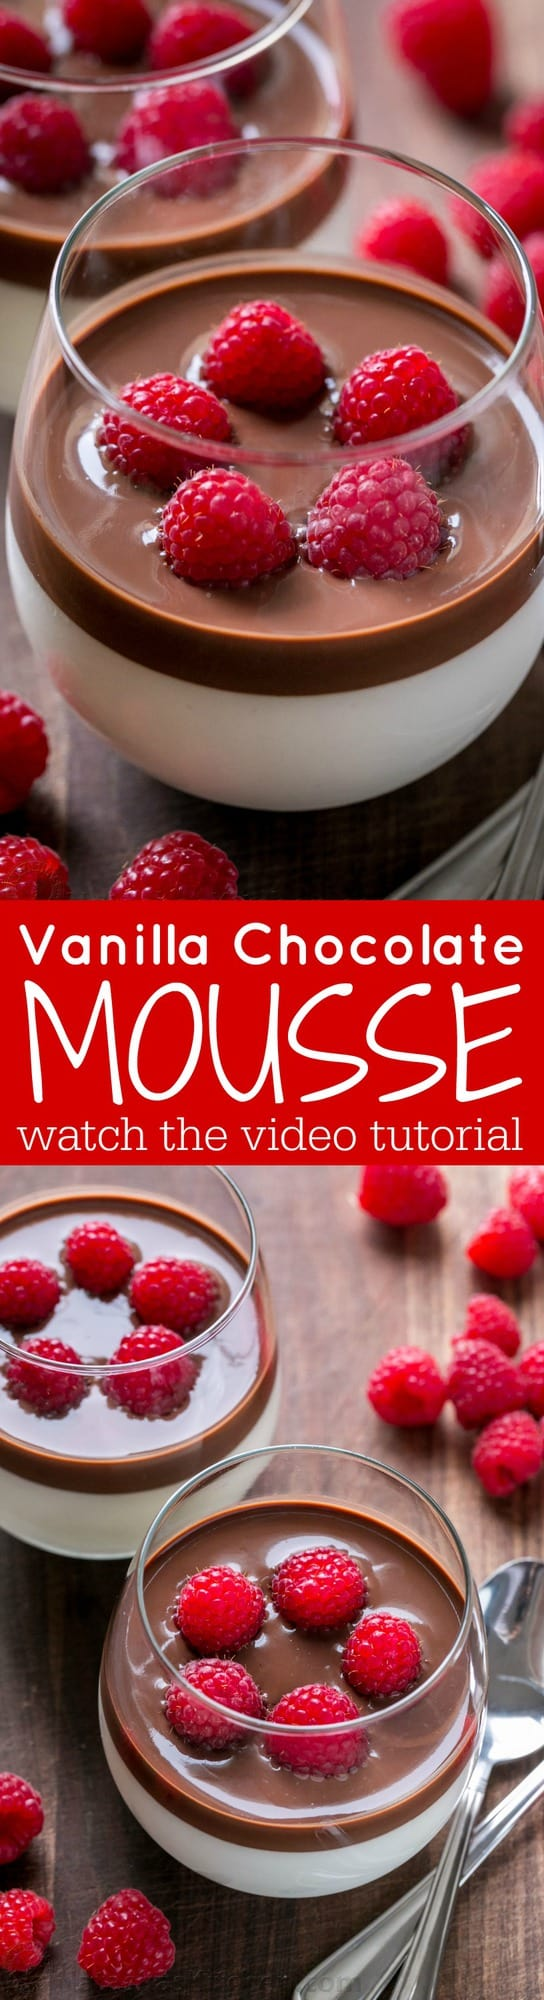 This Vanilla Mousse is an European dessert with creamy base and silky chocolate topping. An elegant vanilla mousse recipe that's surprisingly easy (VIDEO) | natashaskitchen.com